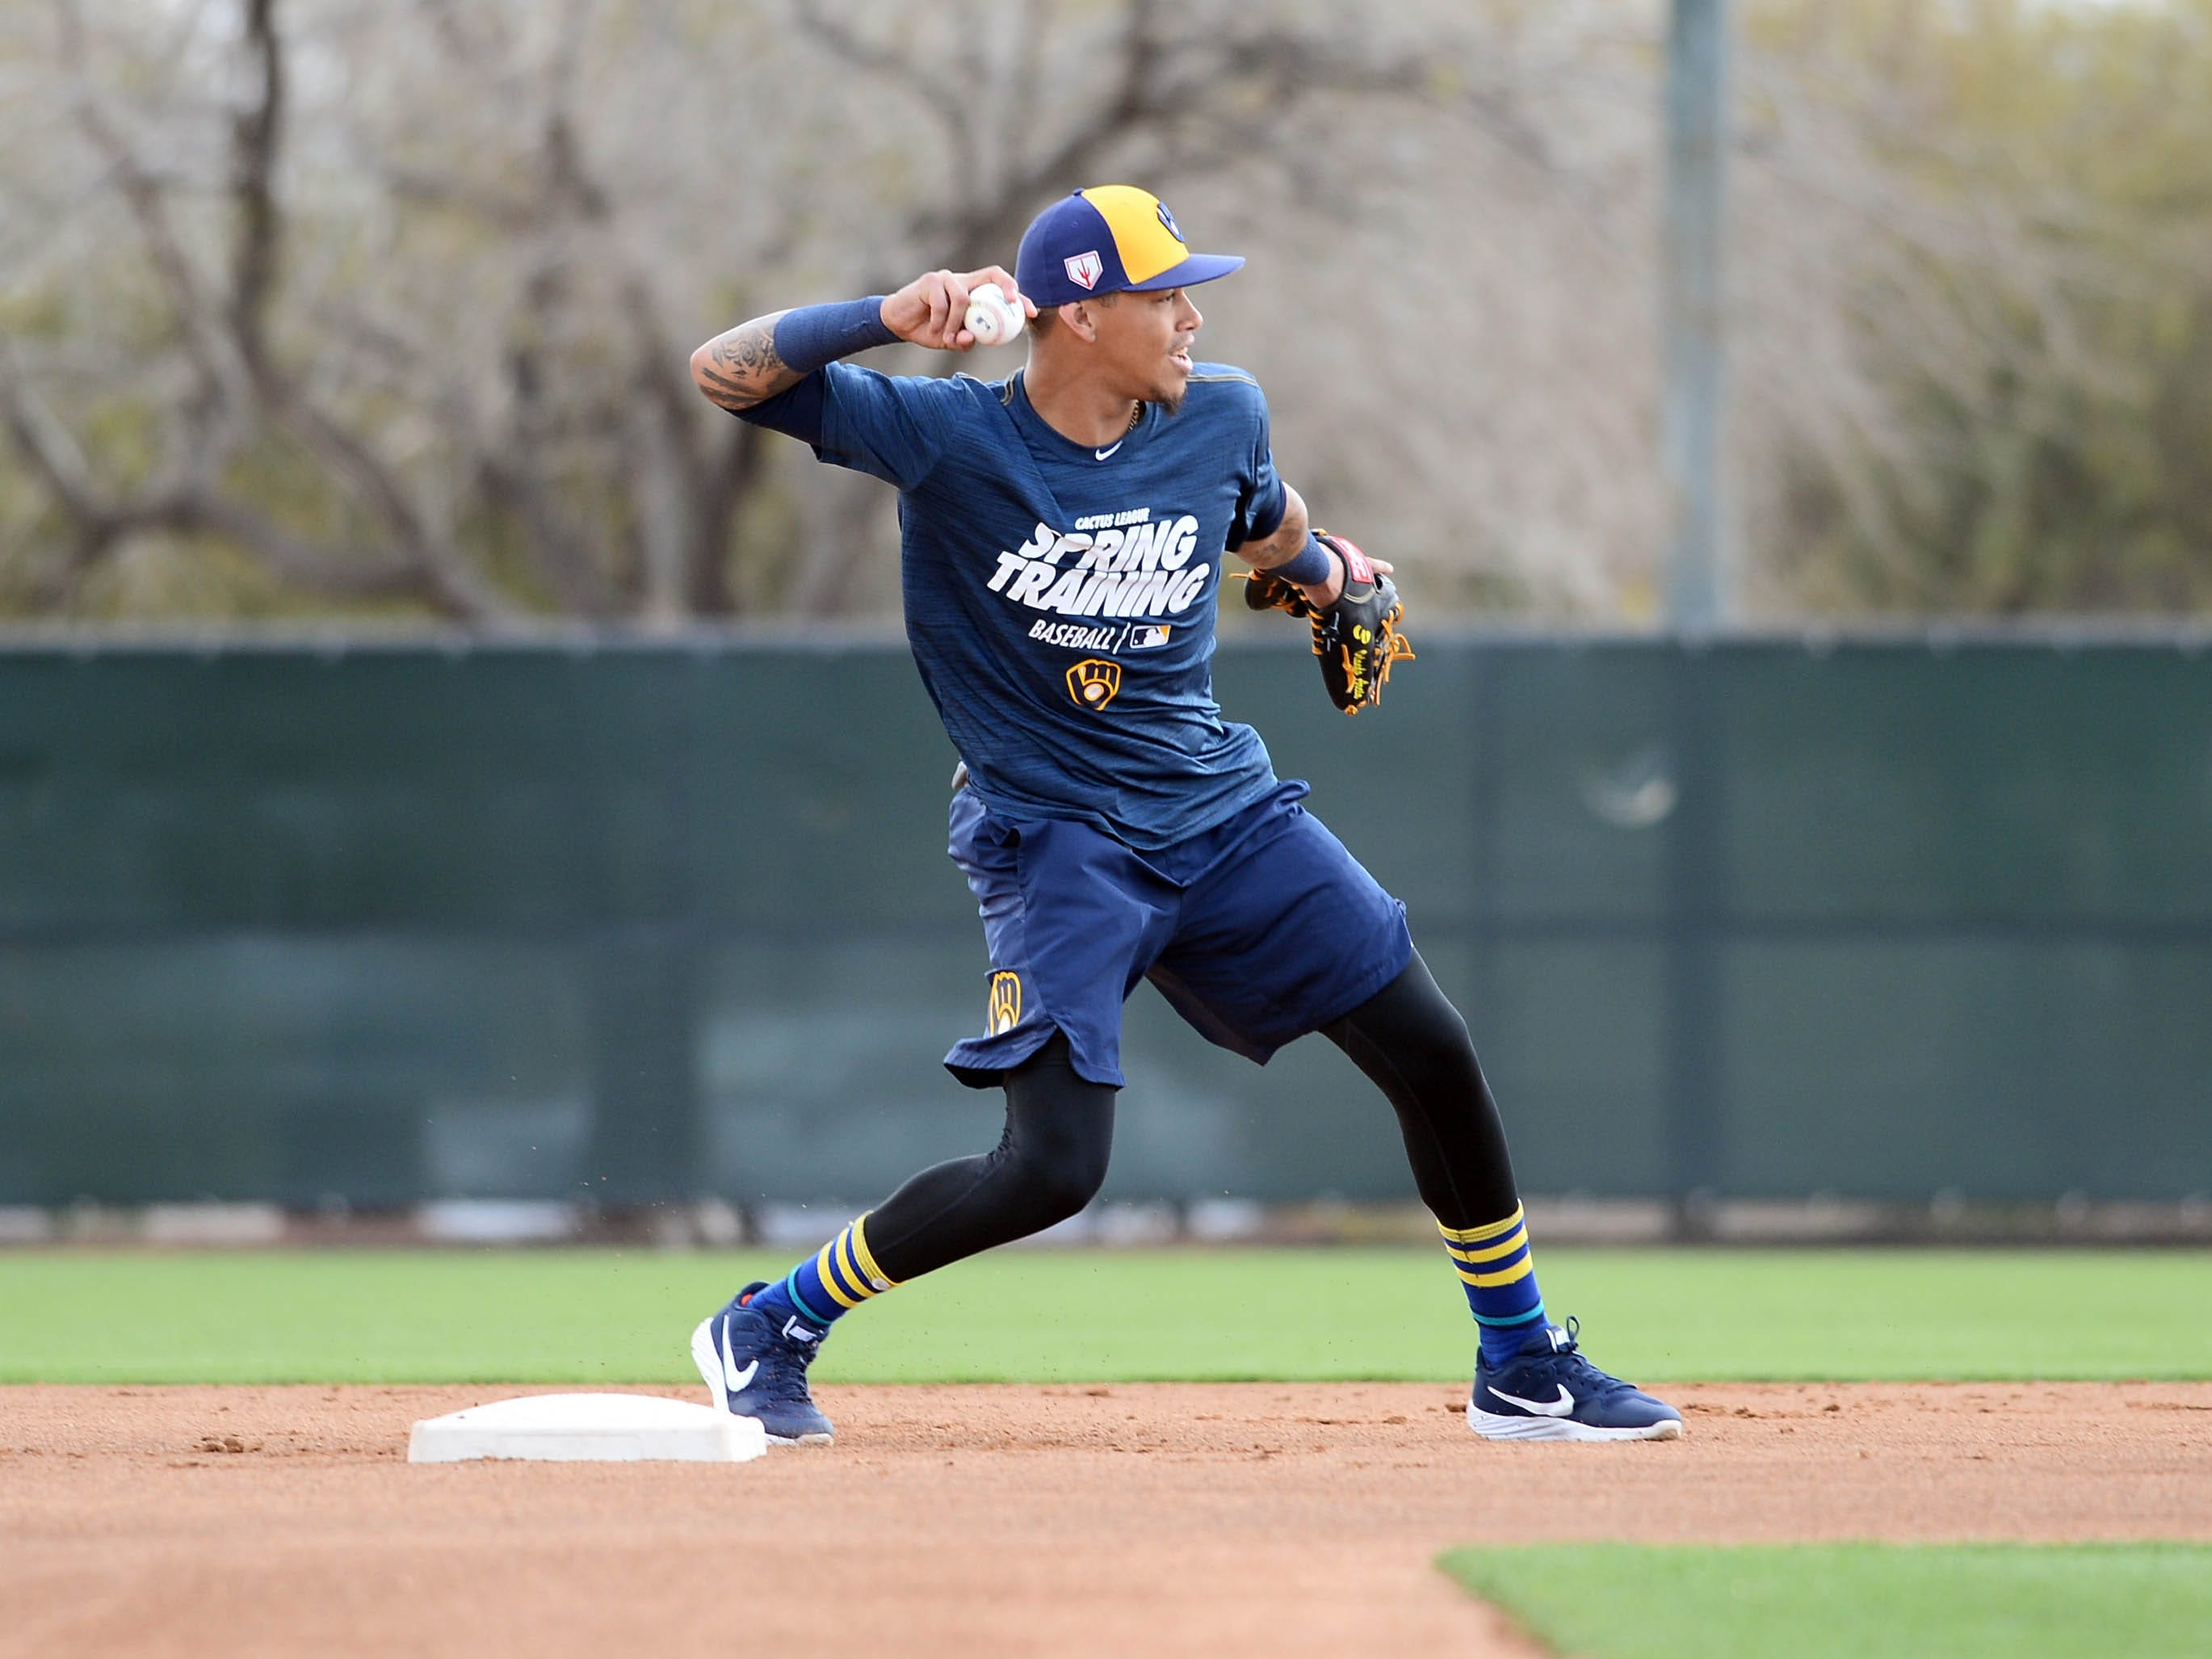 Brewers shortstop Orlando Arcia gets ready to flip a throw to first during fielding drills Satruday.